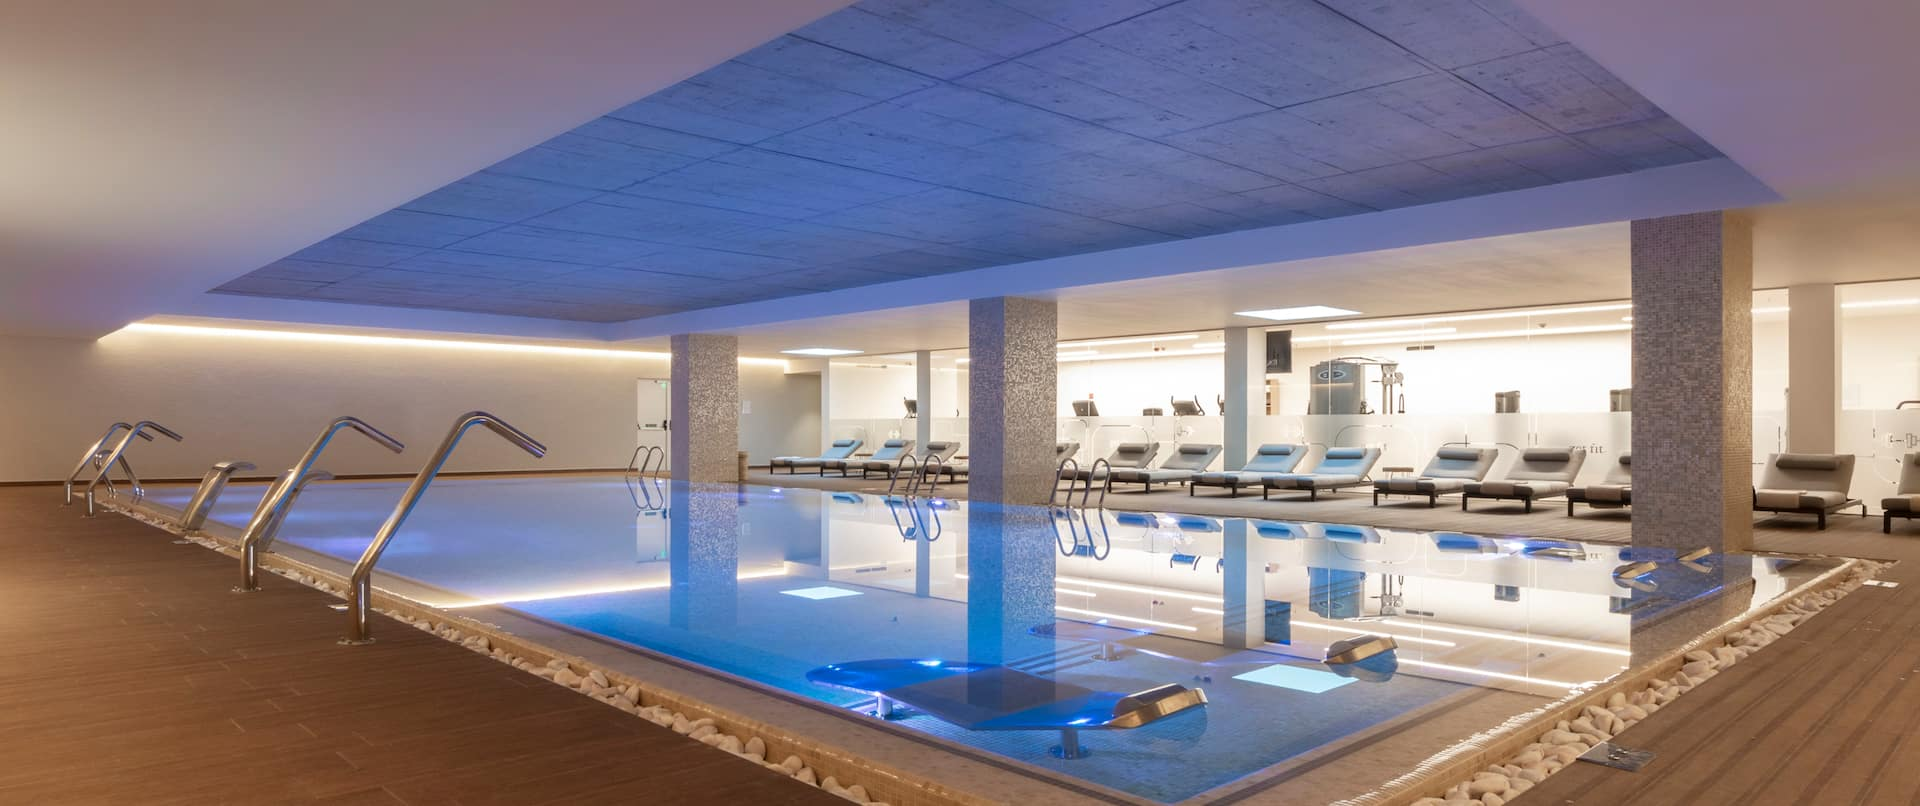 Indoor Pool with Seating Area at the Spa